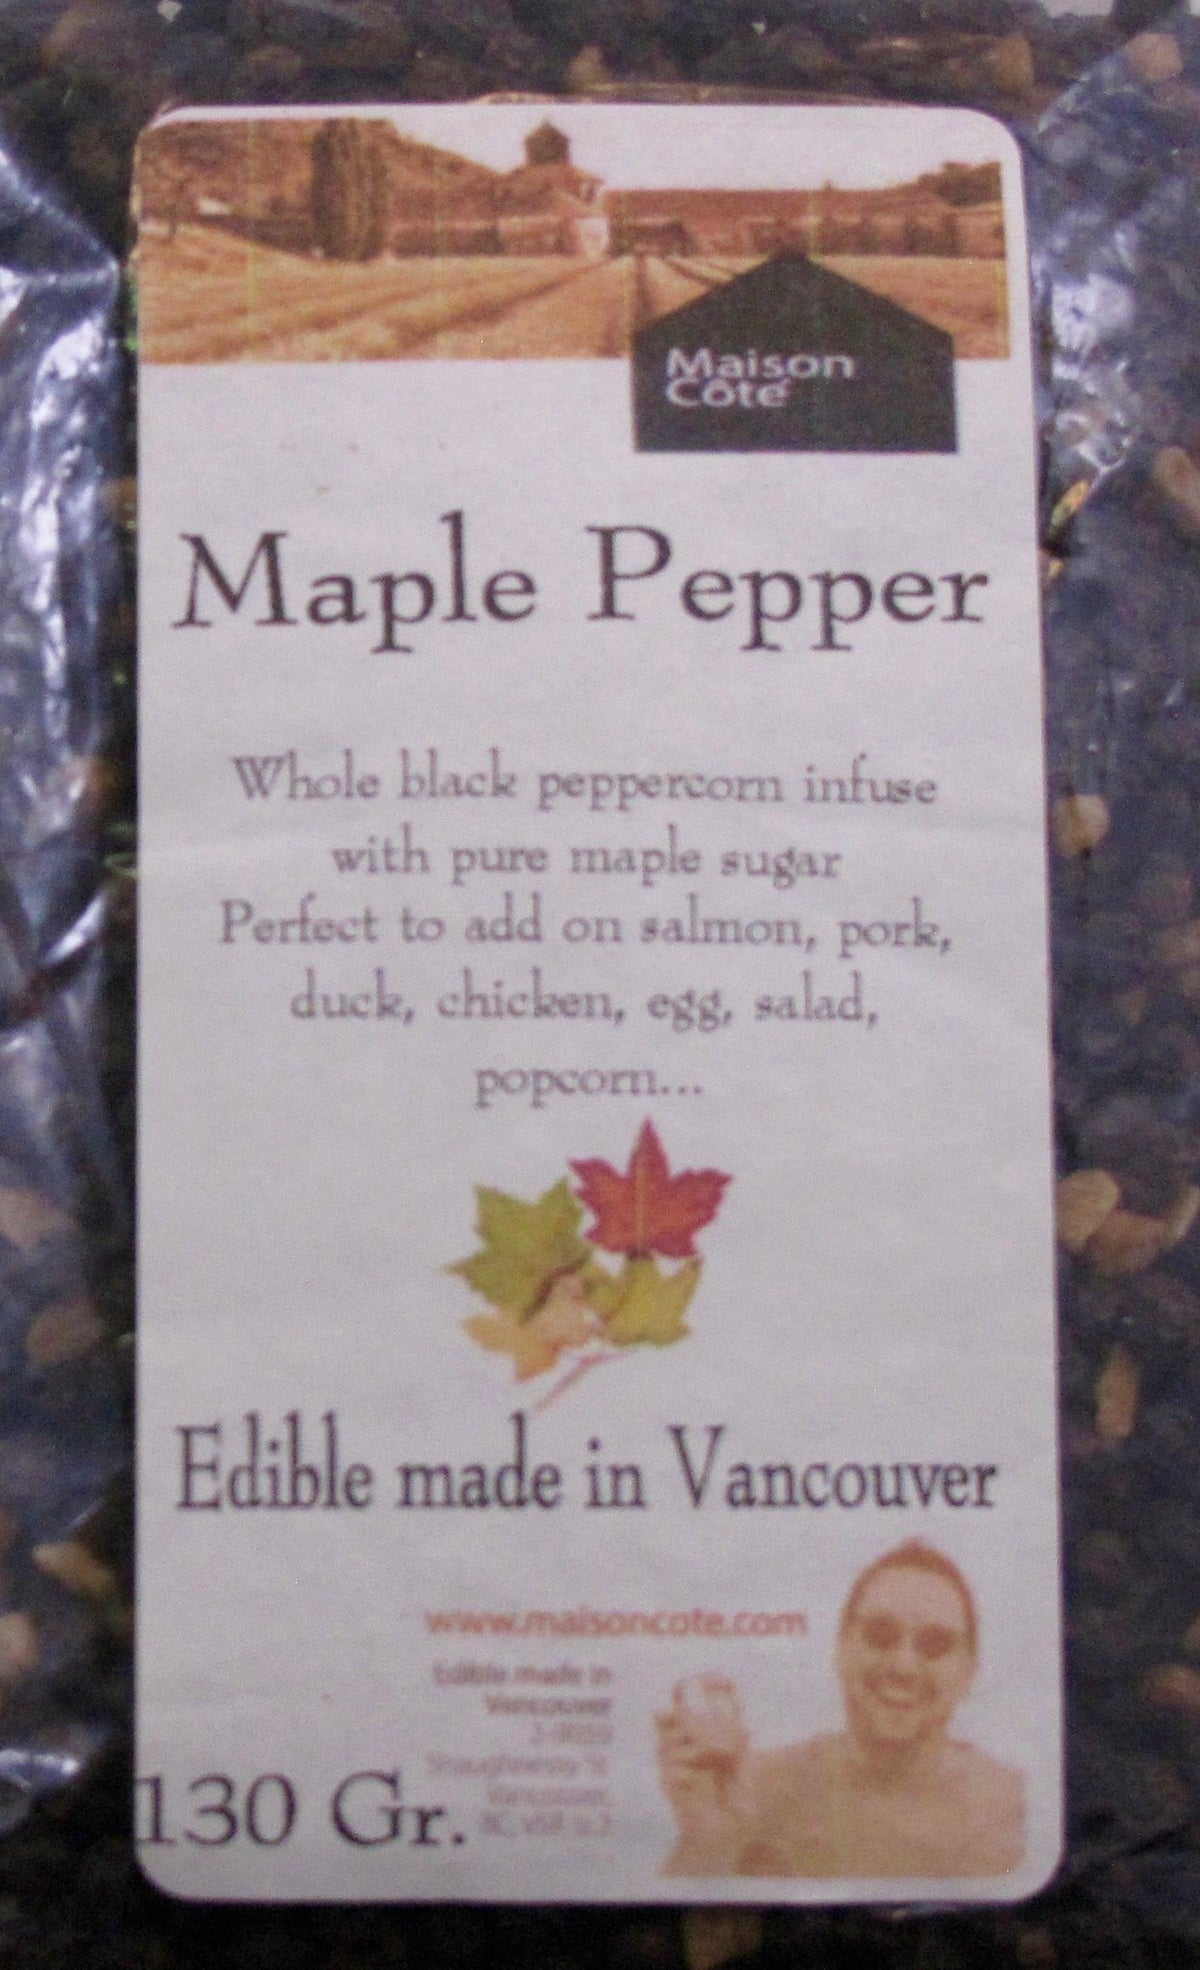 Whole Peppercorns - Maple Pepper